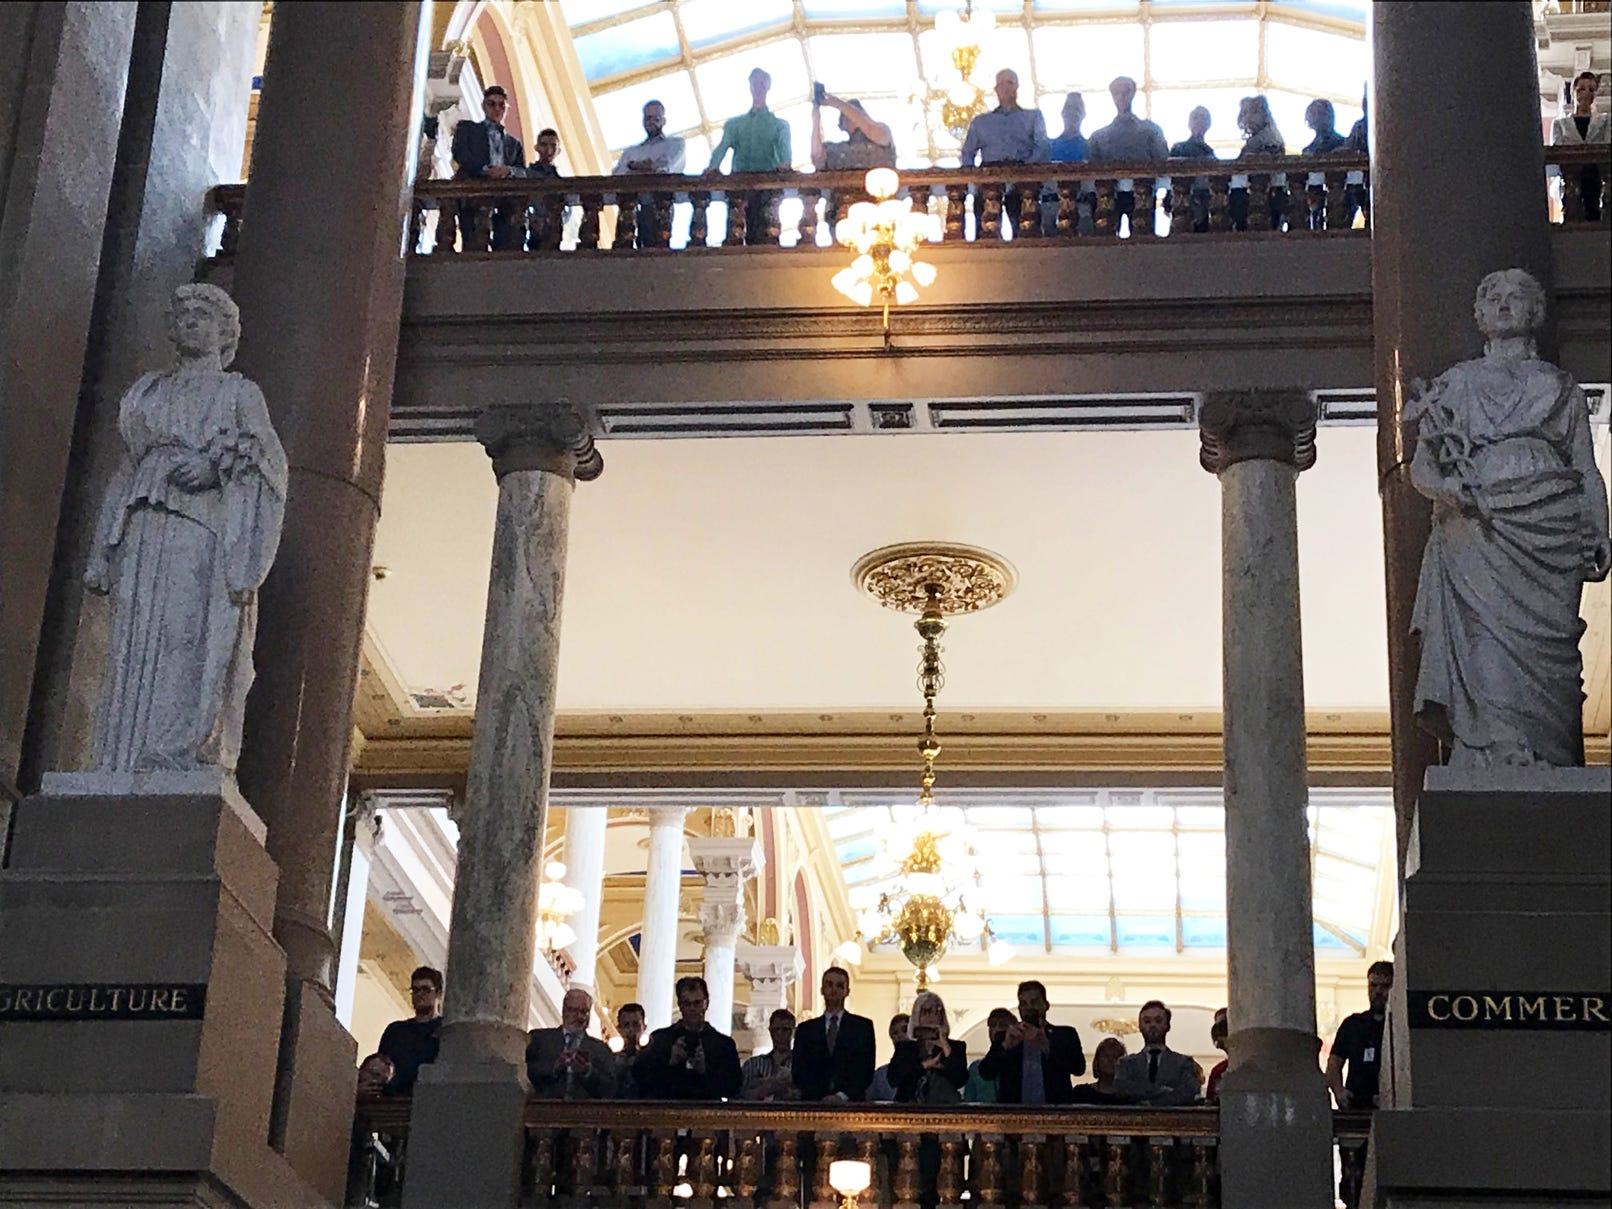 Mourners watch from the balcony as the body of former Indiana Senator Richard Lugar lies in state in the rotunda of the State Capitol in Indianapolis, Tuesday, May 14, 2019.